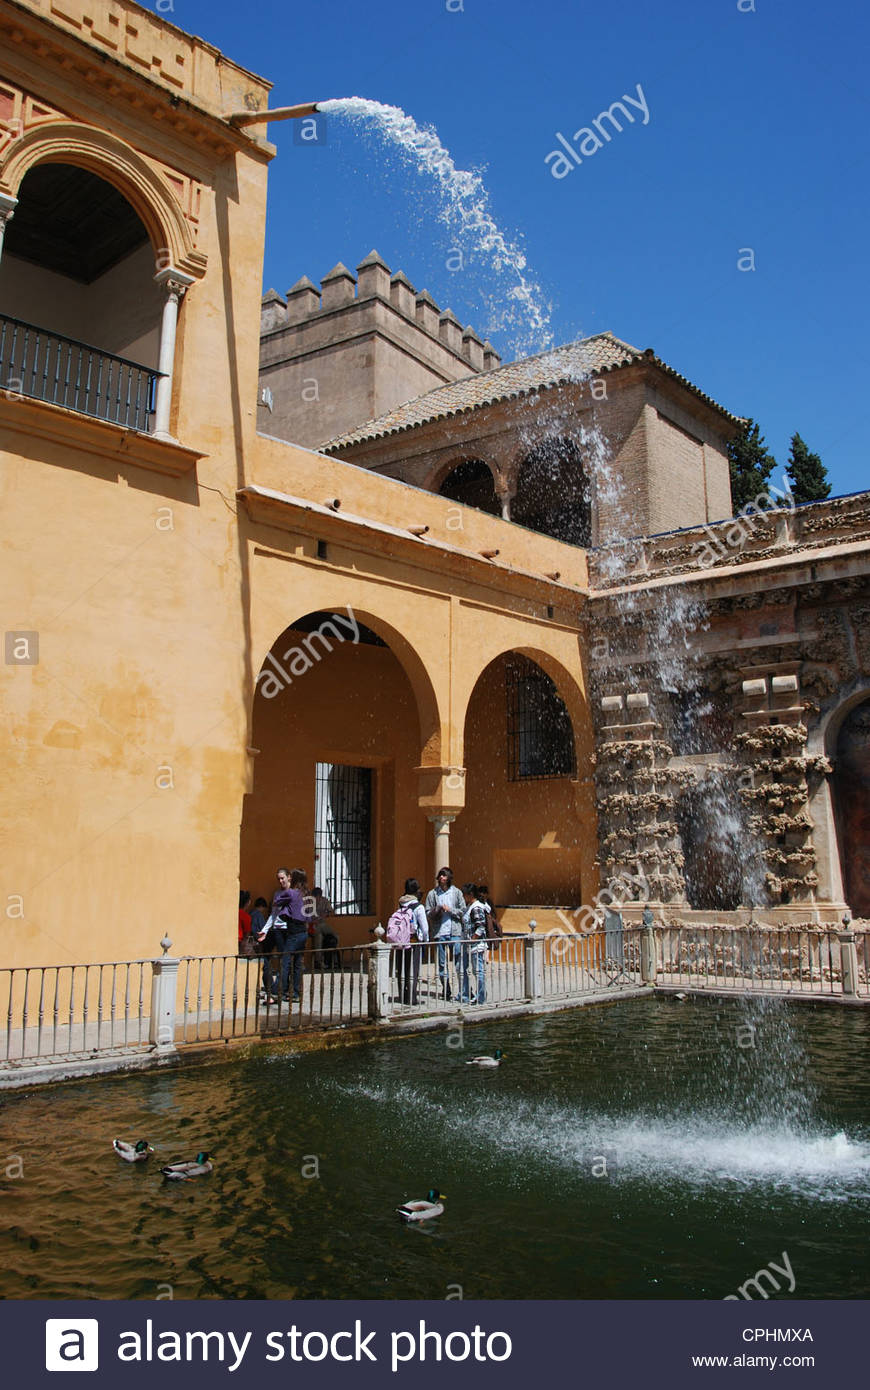 Novelty fountain and pool in gardens within the Castle of the Kings (Alcazar), Seville, Spain, Western Europe. - Stock Image